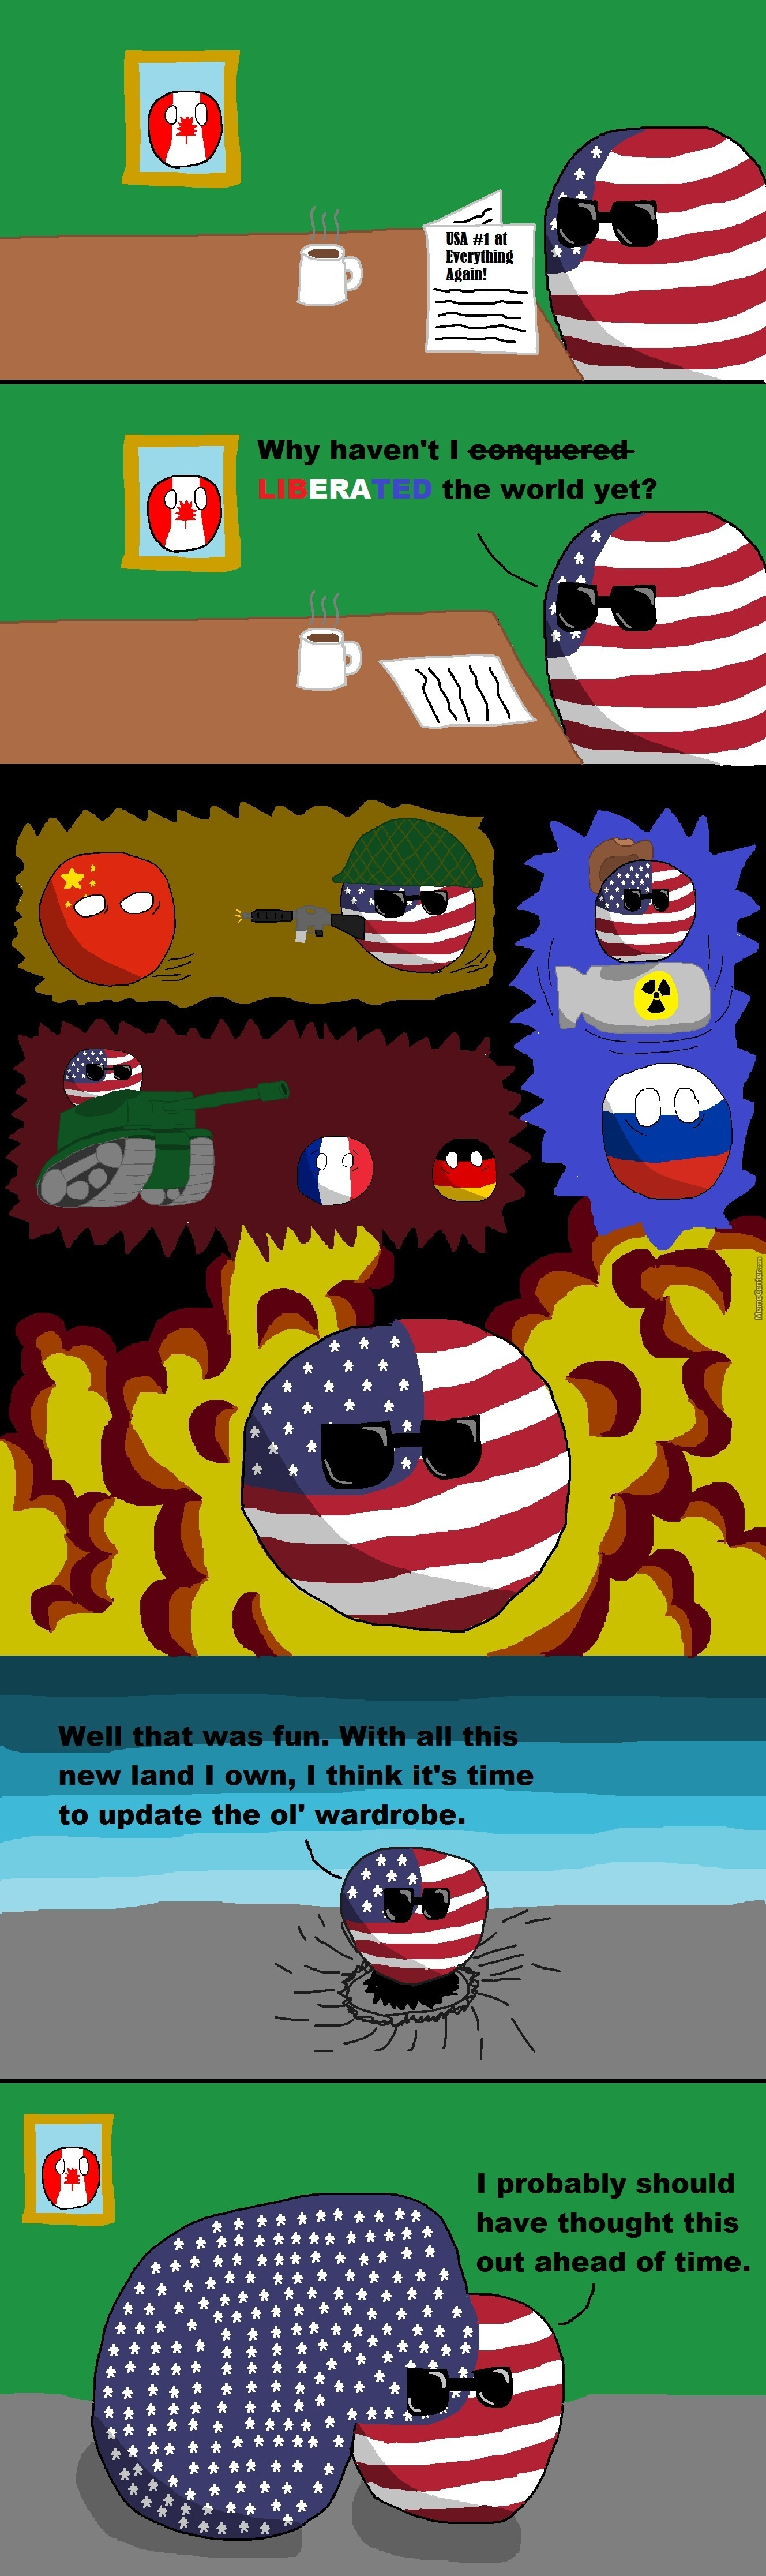 If Usa Conqured The World